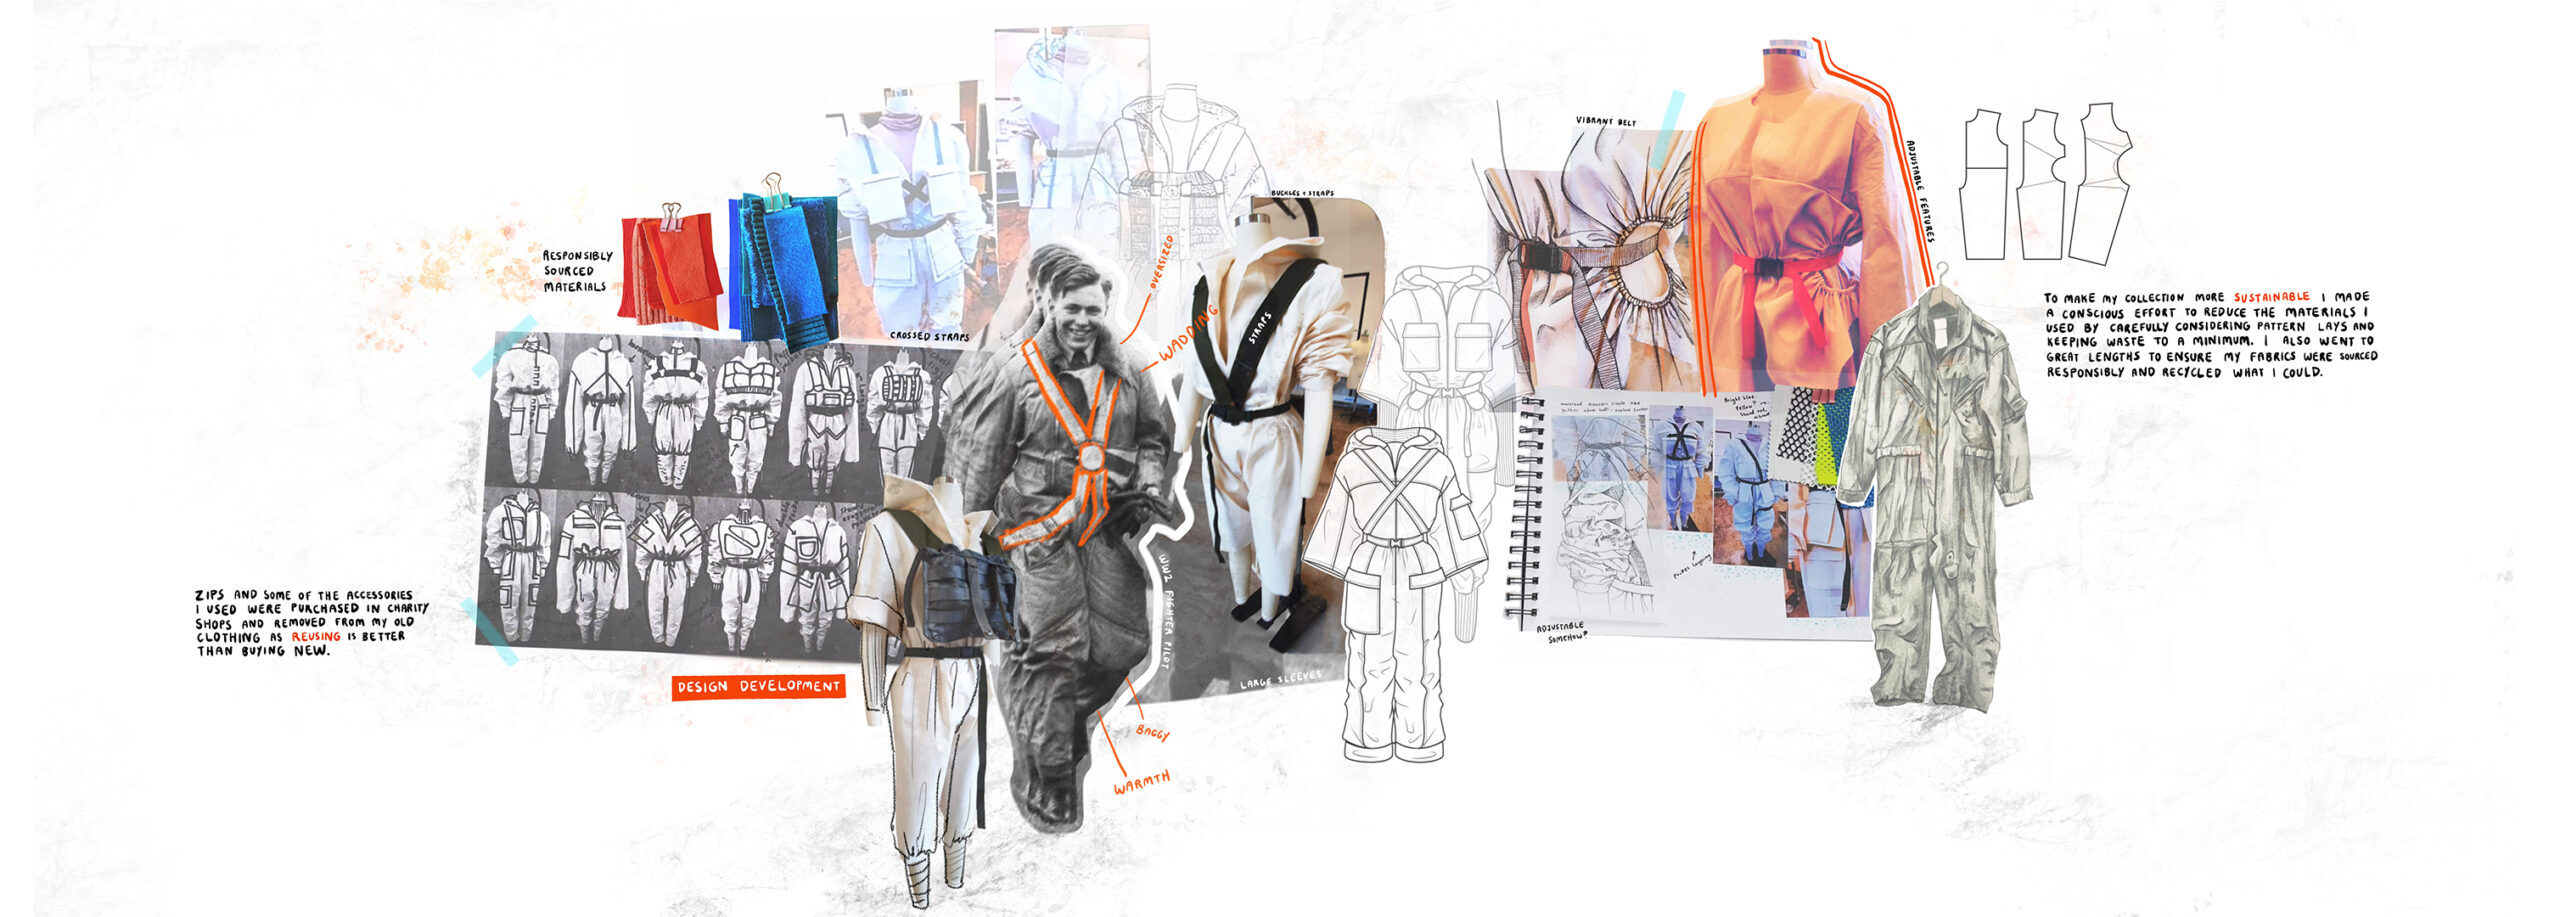 Portfolio page with design development, sketches, photographs of toiles and garments on stands